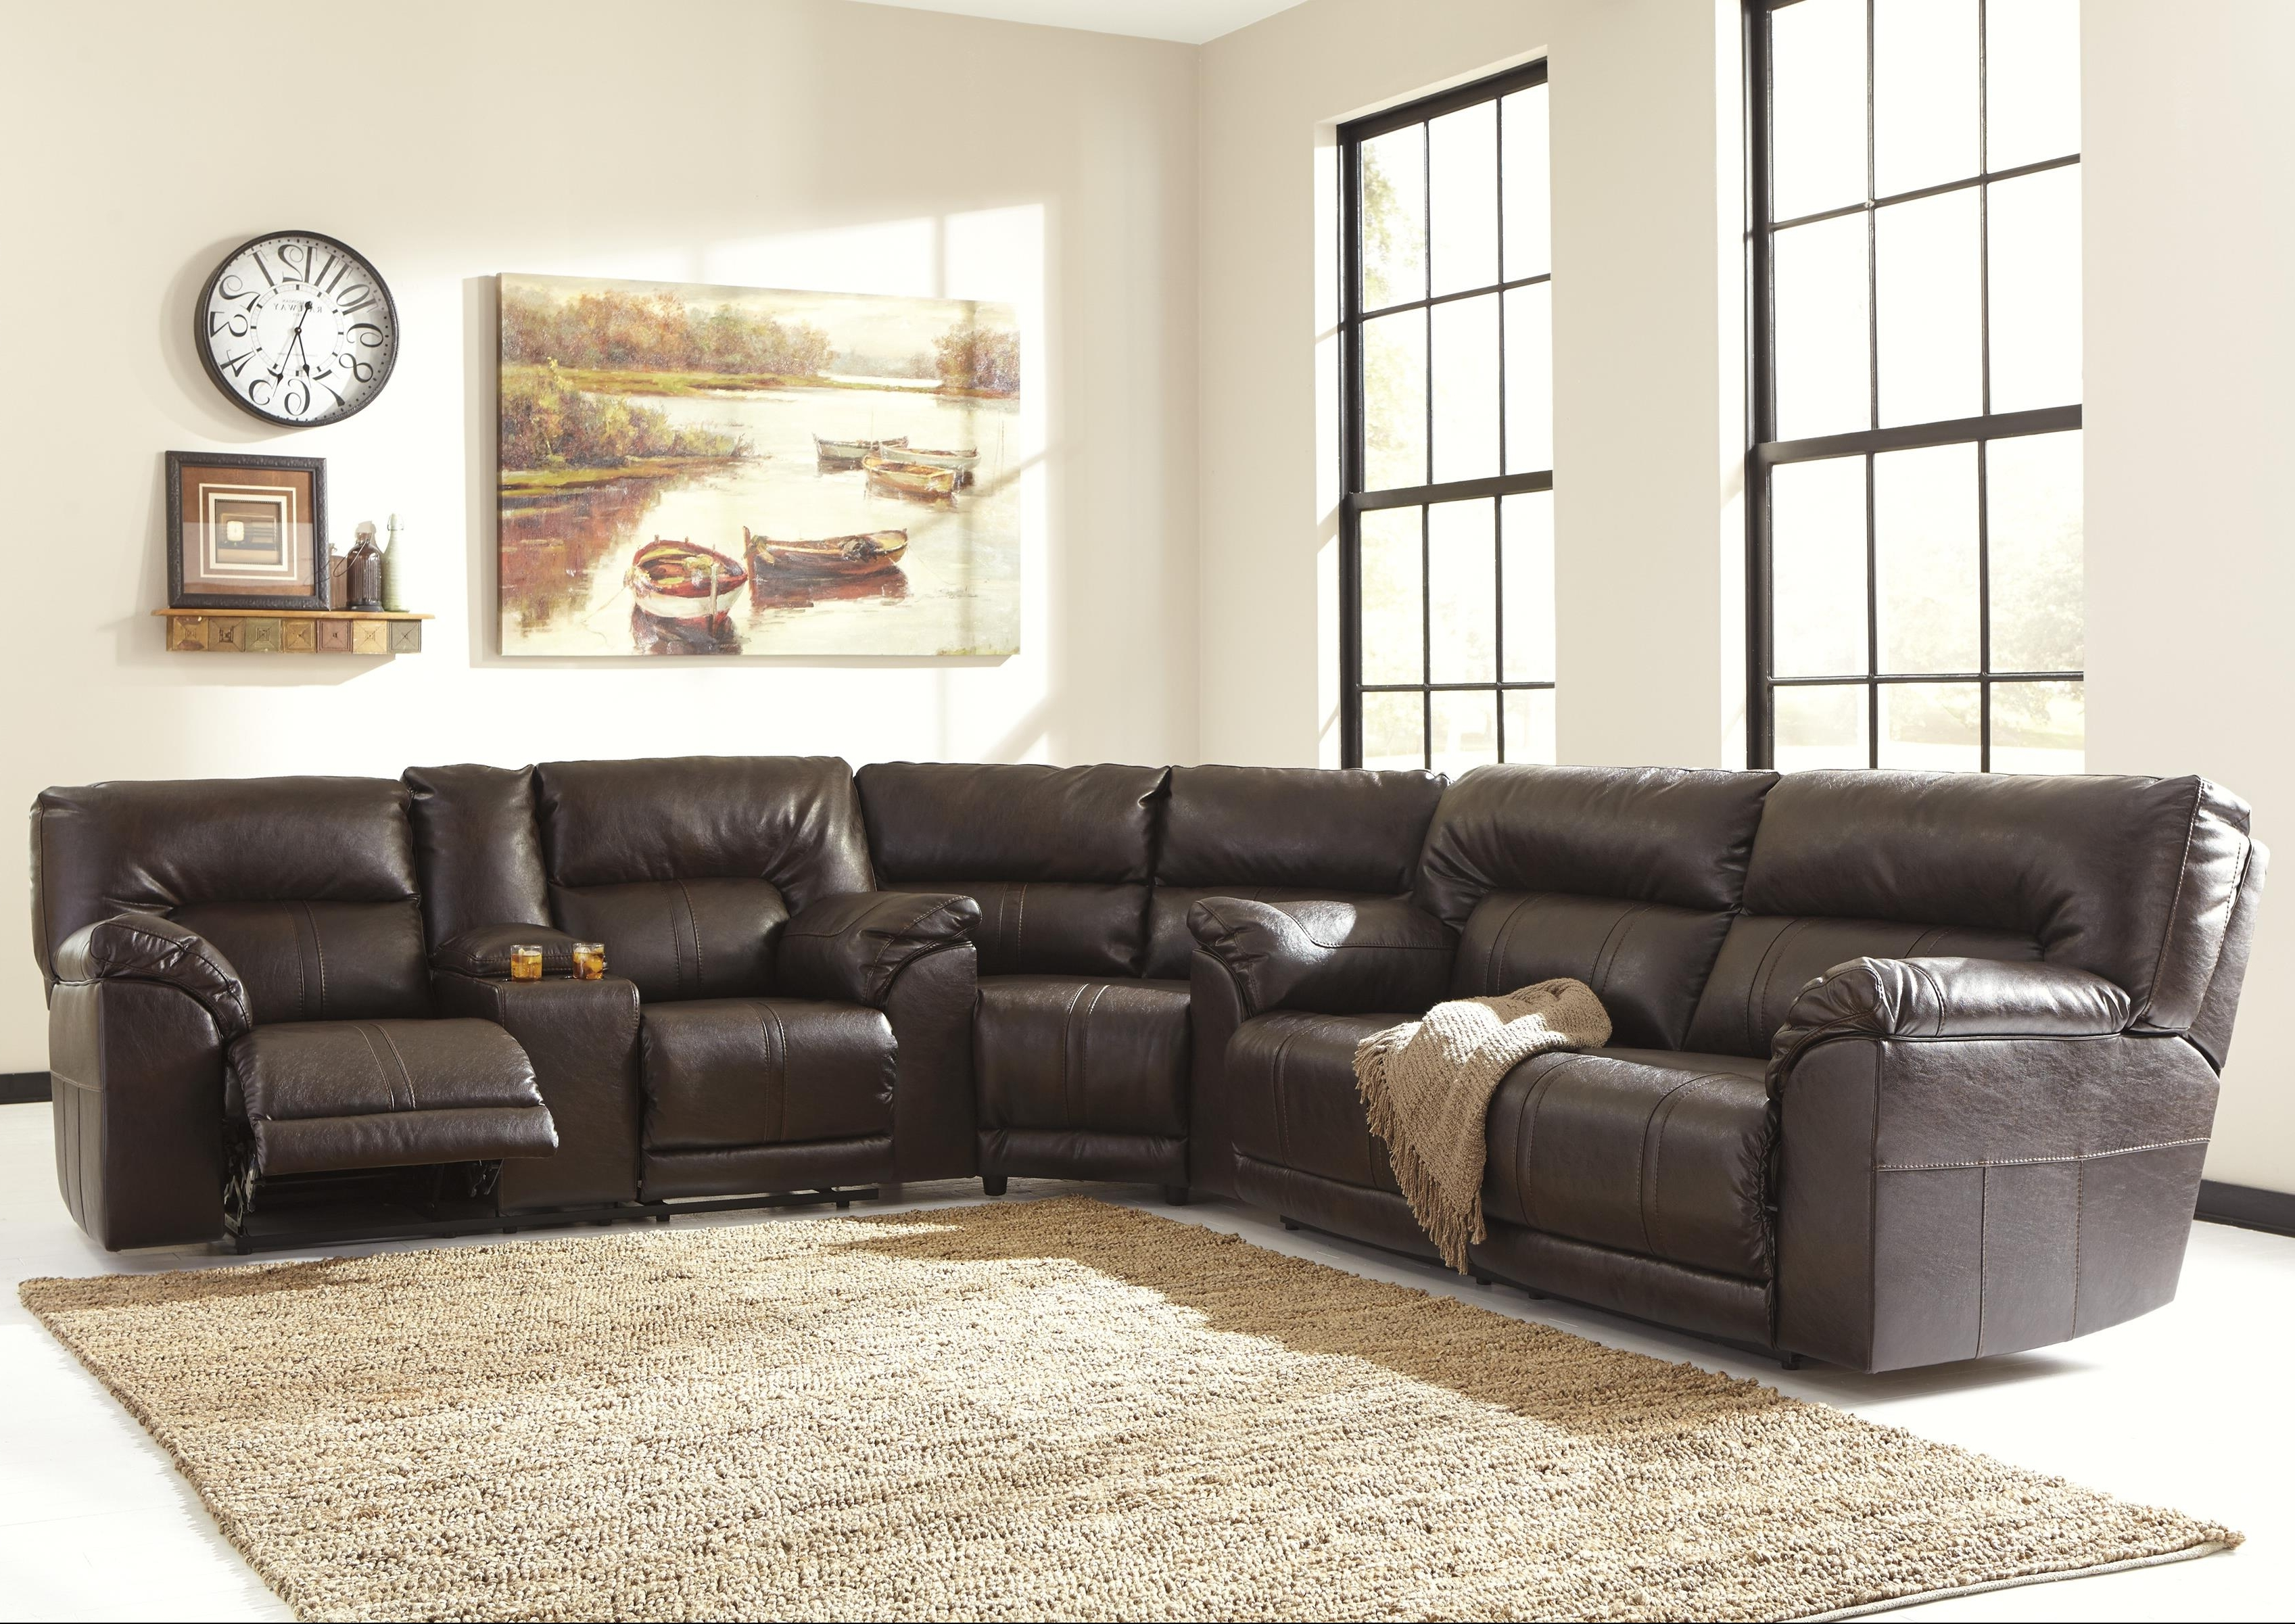 Benchcraftashley Barrettsville Durablend® 3 Piece Reclining In Most Up To Date Sectional Sofas At Birmingham Al (View 6 of 20)